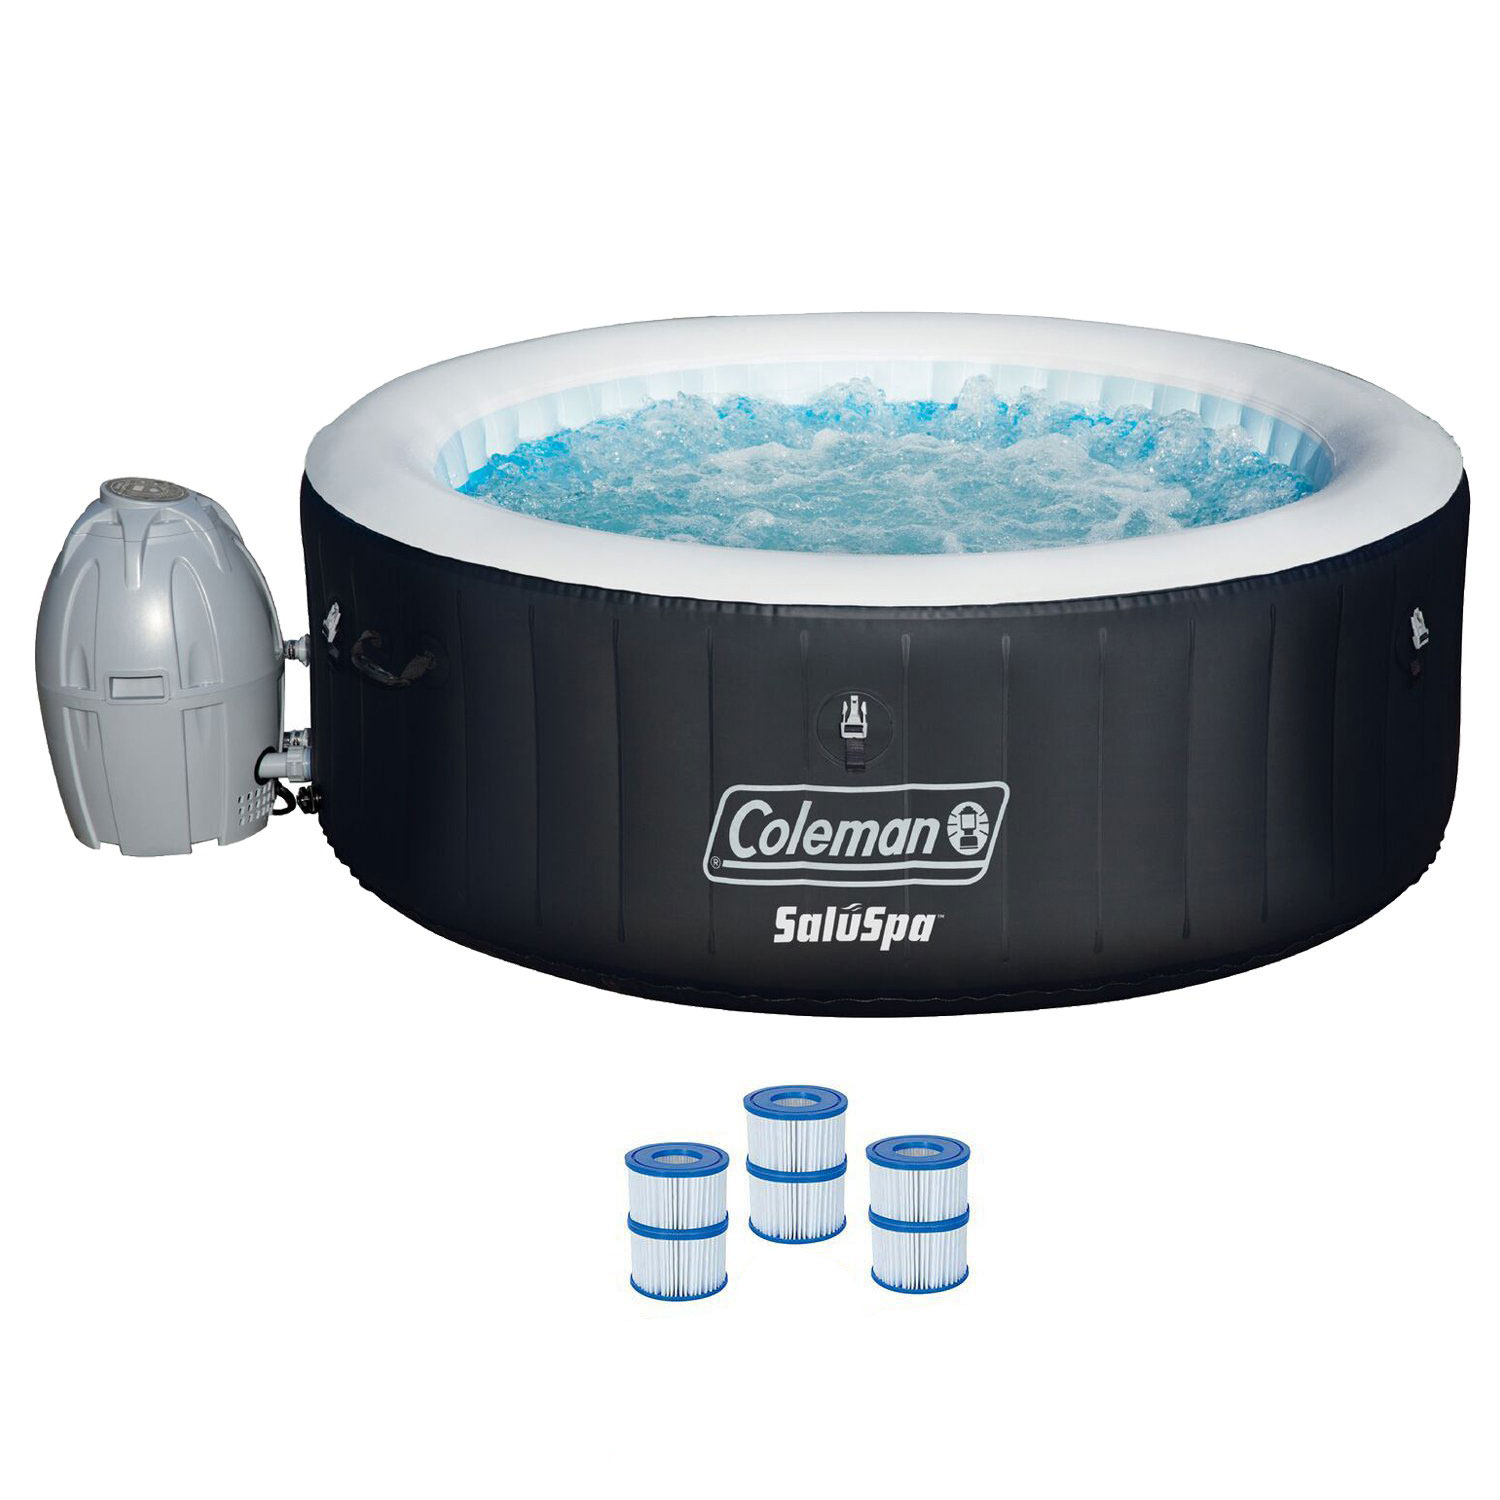 """Coleman SaluSpa 71 x 26"""" Inflatable Spa 4-Person Hot Tub w  3 Filter Cartridges by COLEMAN"""